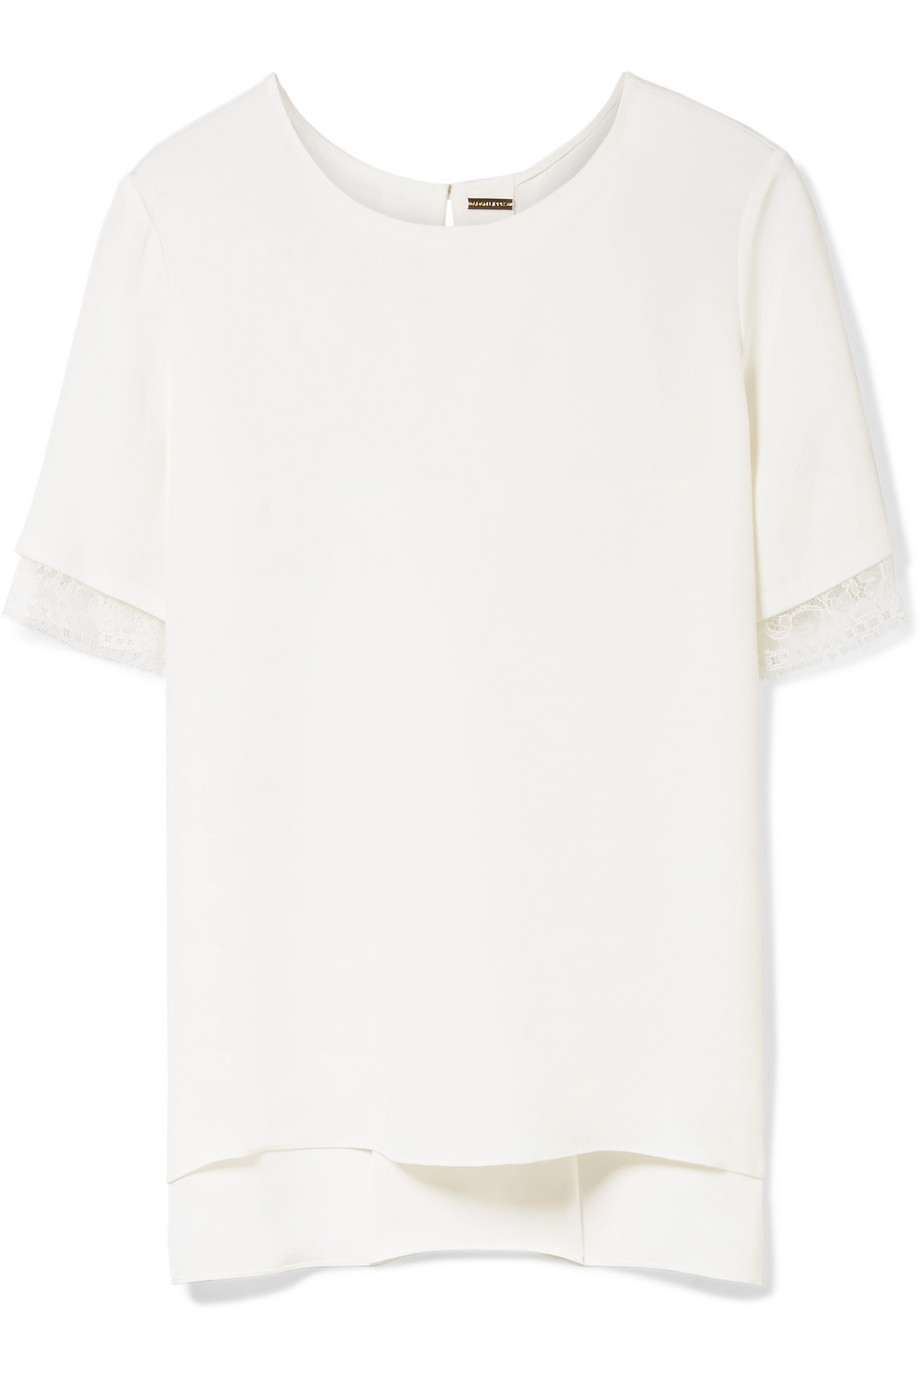 Satin blouse Adam Lippes buy Satin blouse Adam Lippes internet shop